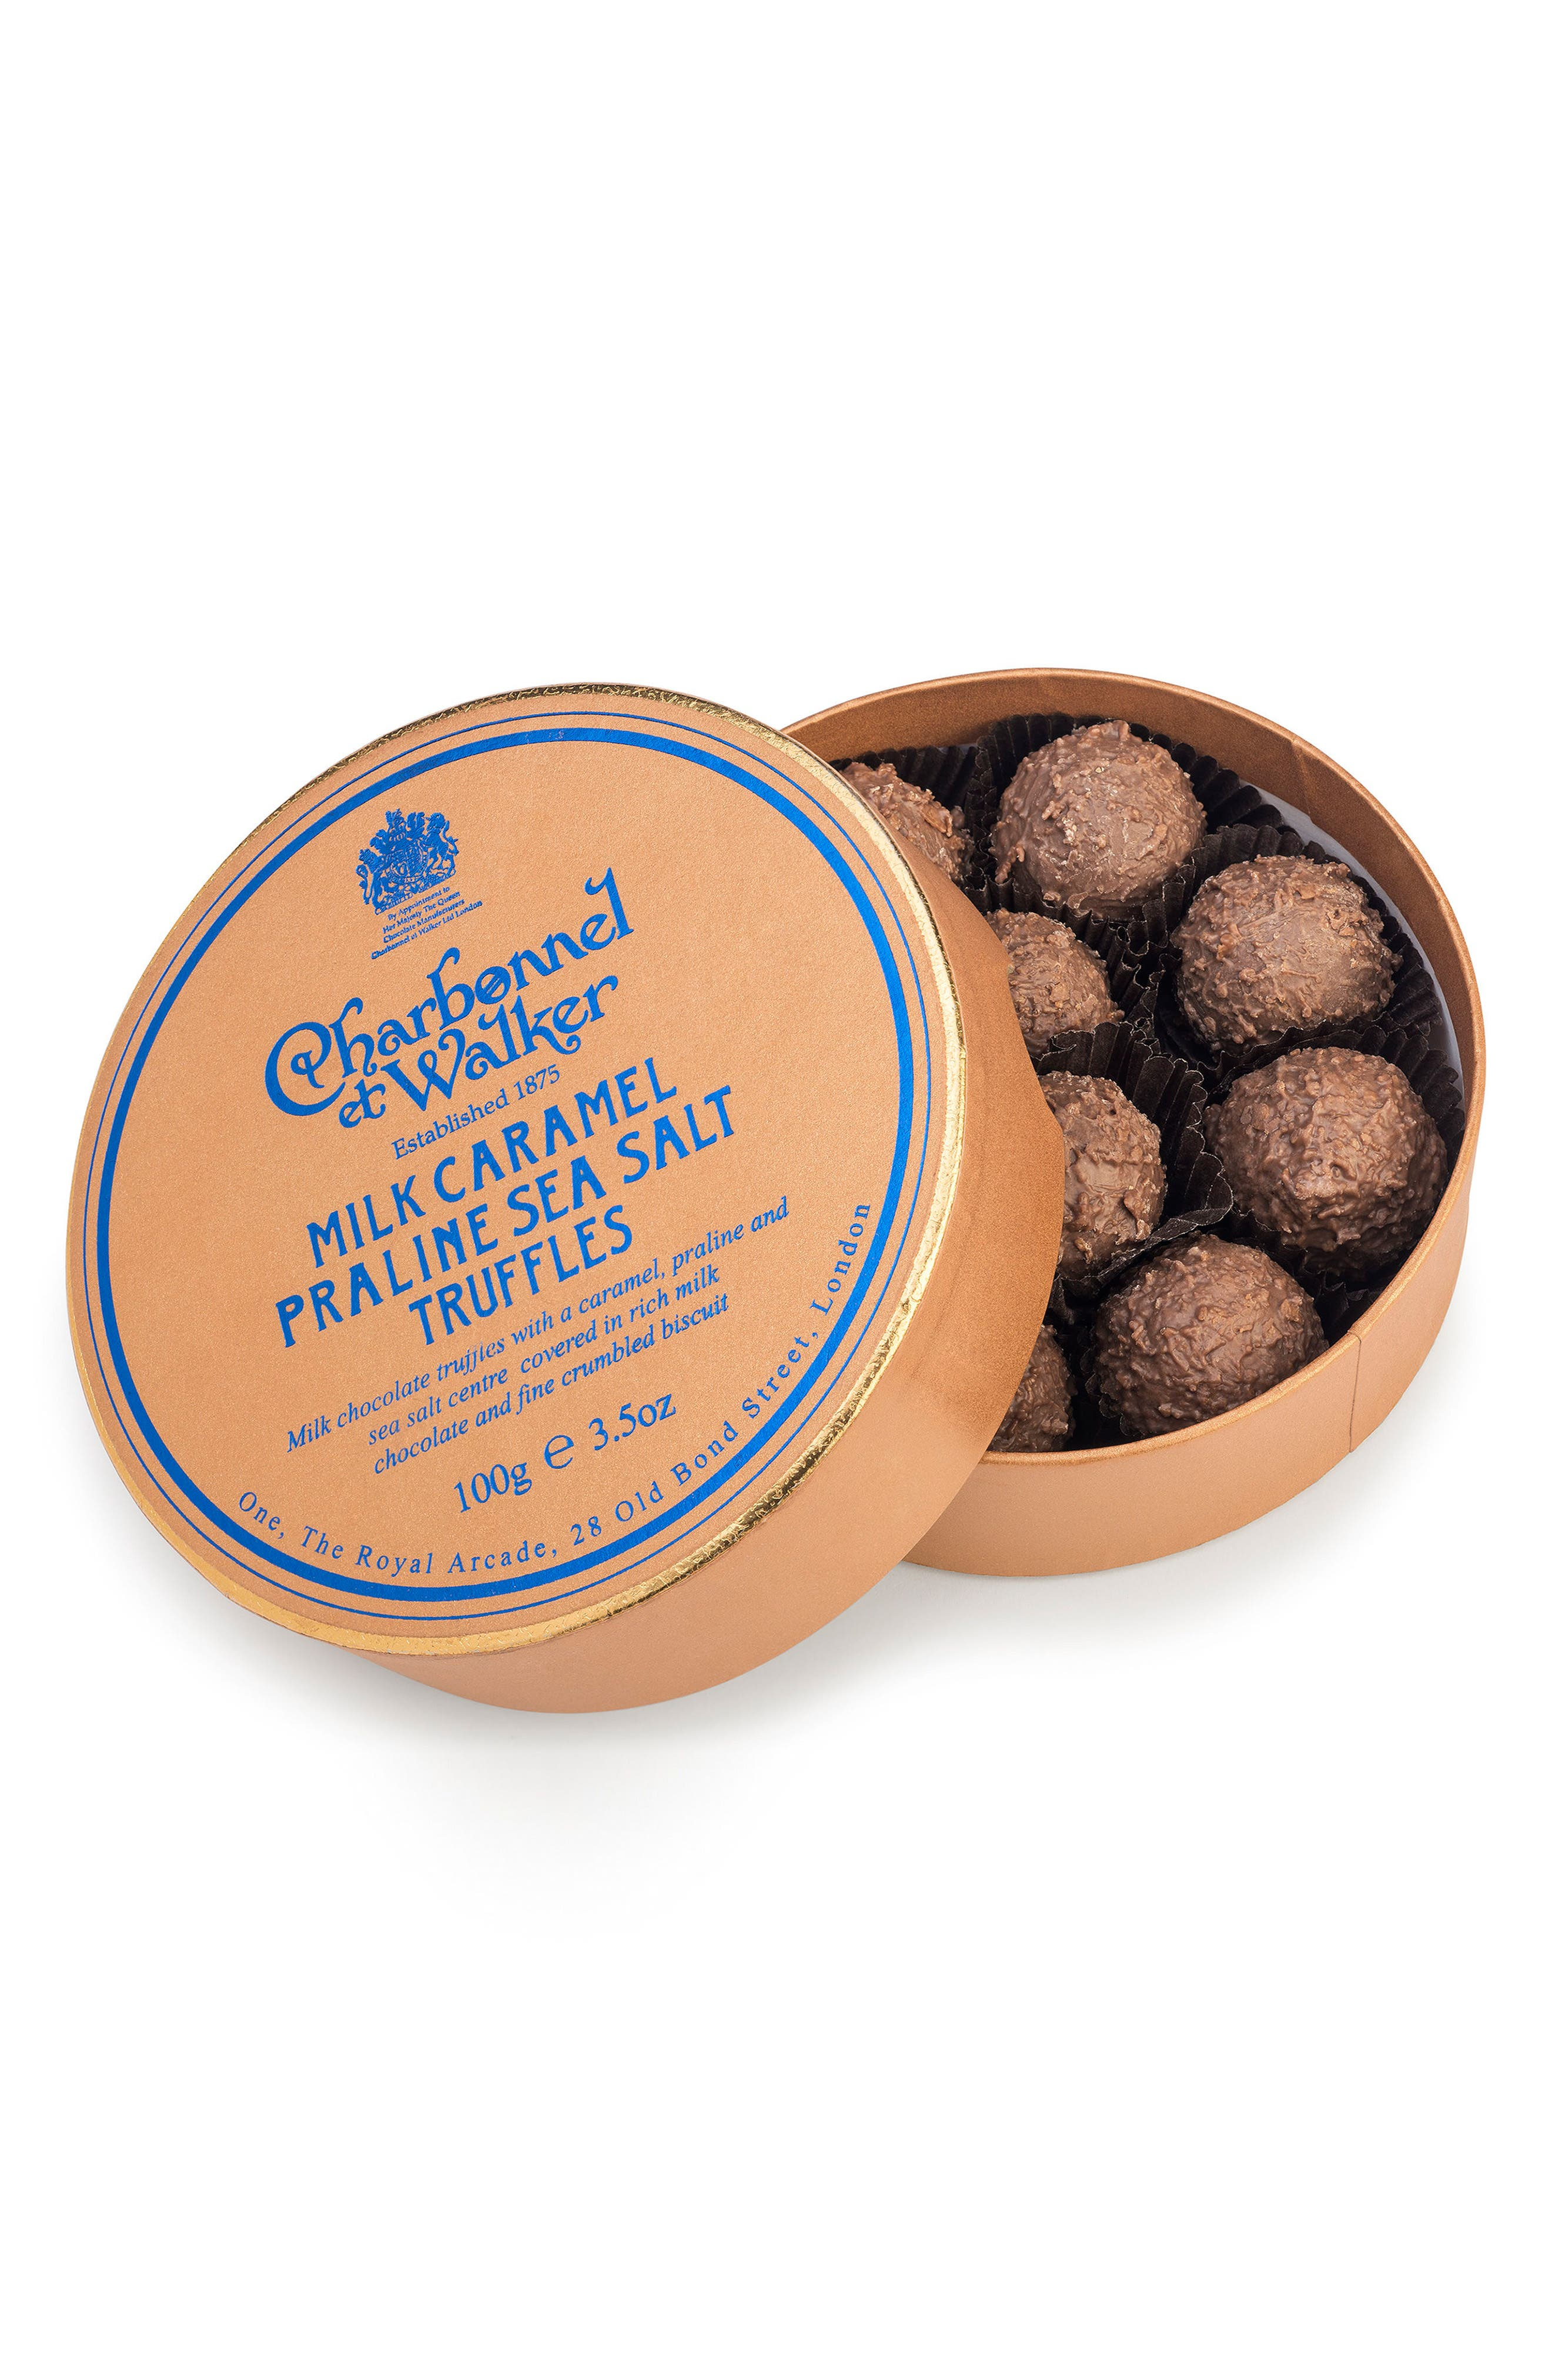 Alternate Image 1 Selected - Charbonnel et Walker Flavored Chocolate Truffles in Gift Box